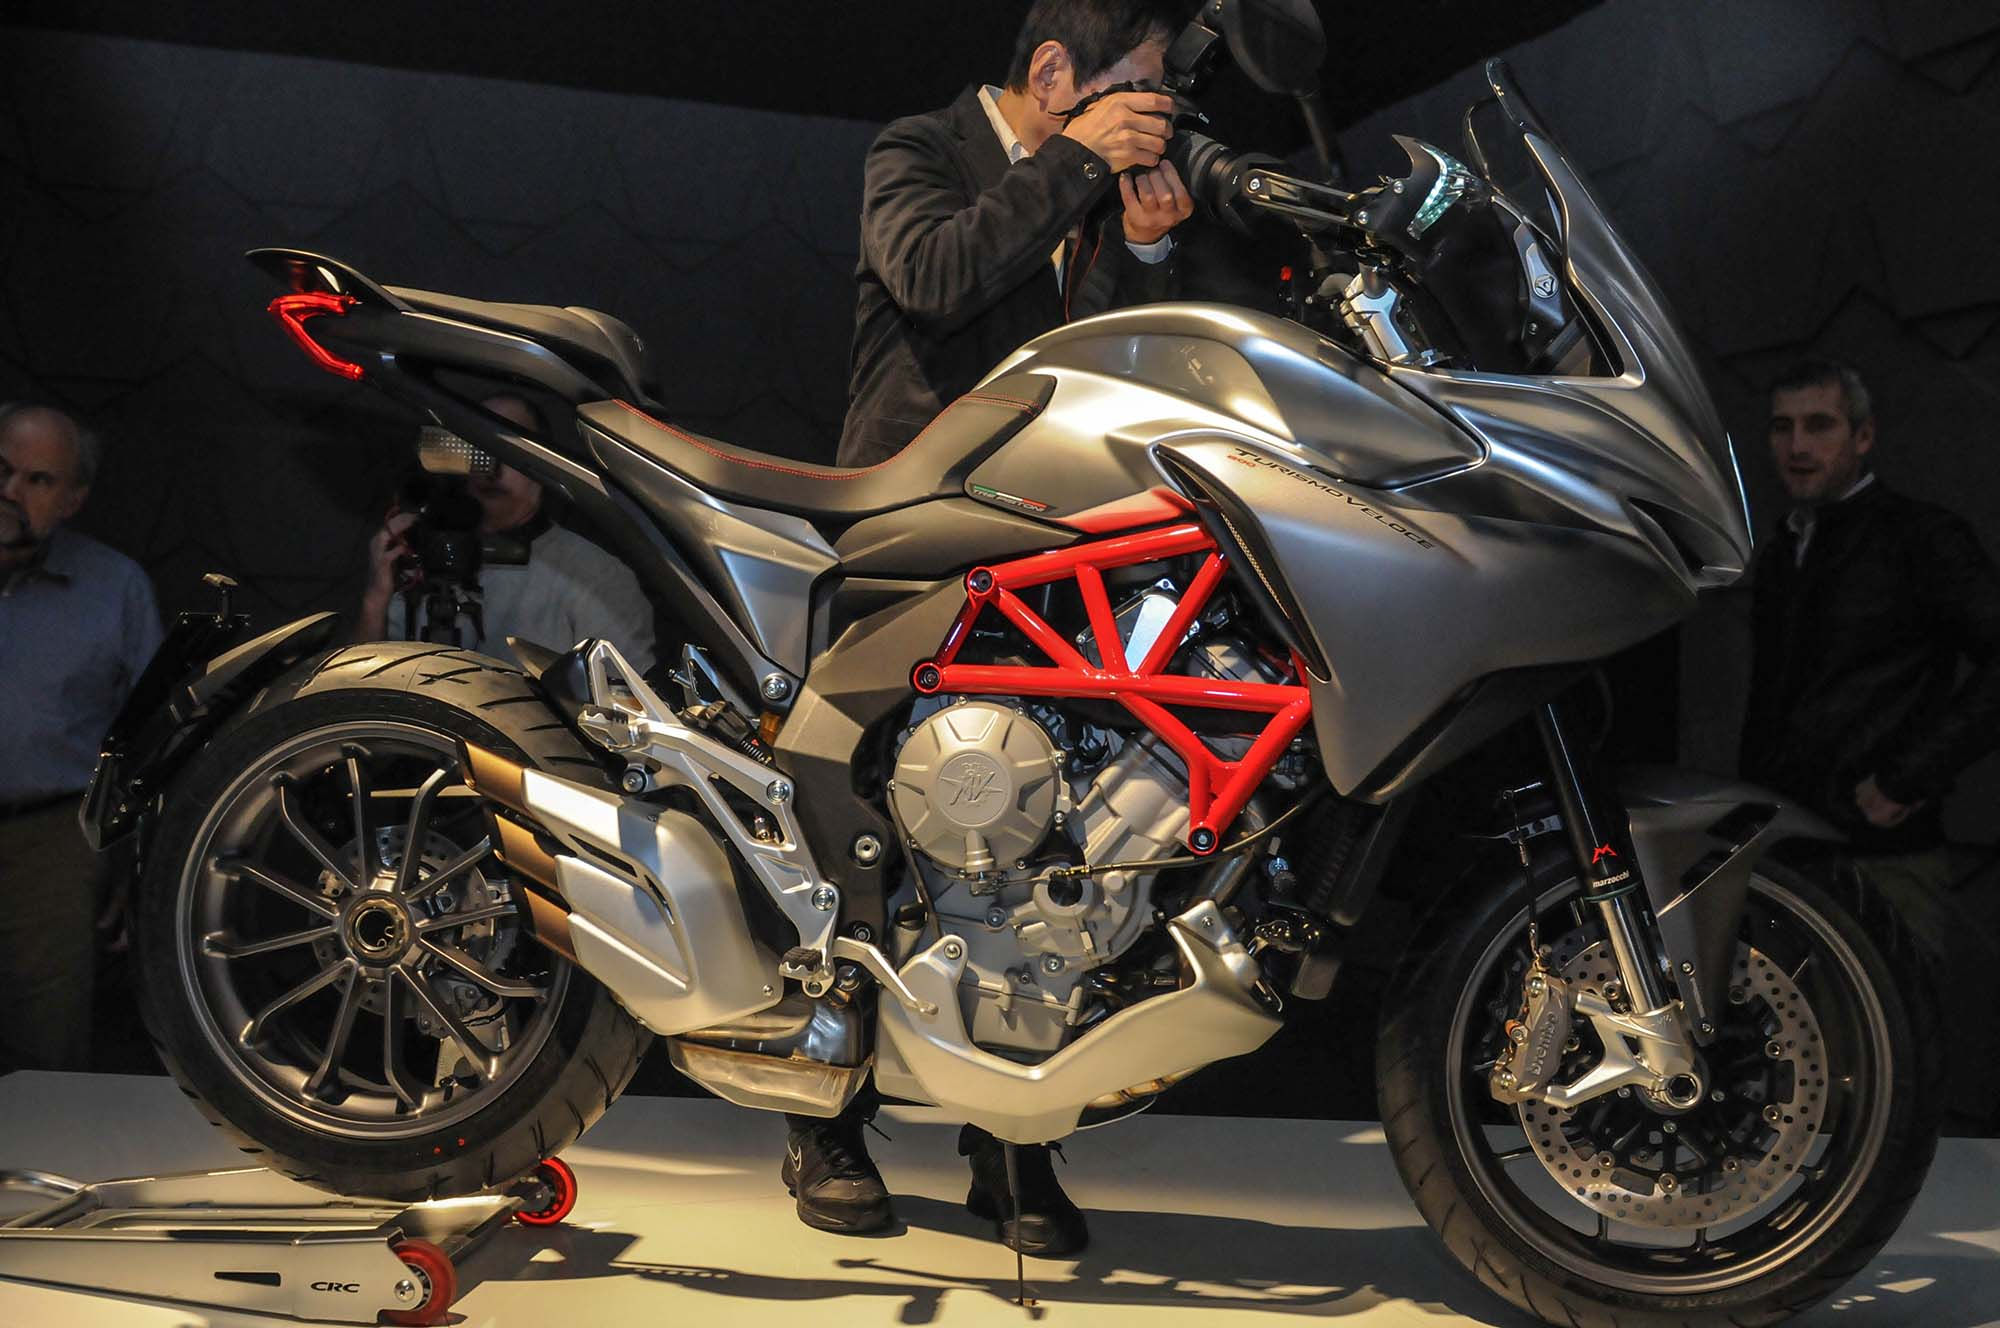 up-close with the mv agusta turismo veloce 800 - asphalt & rubber